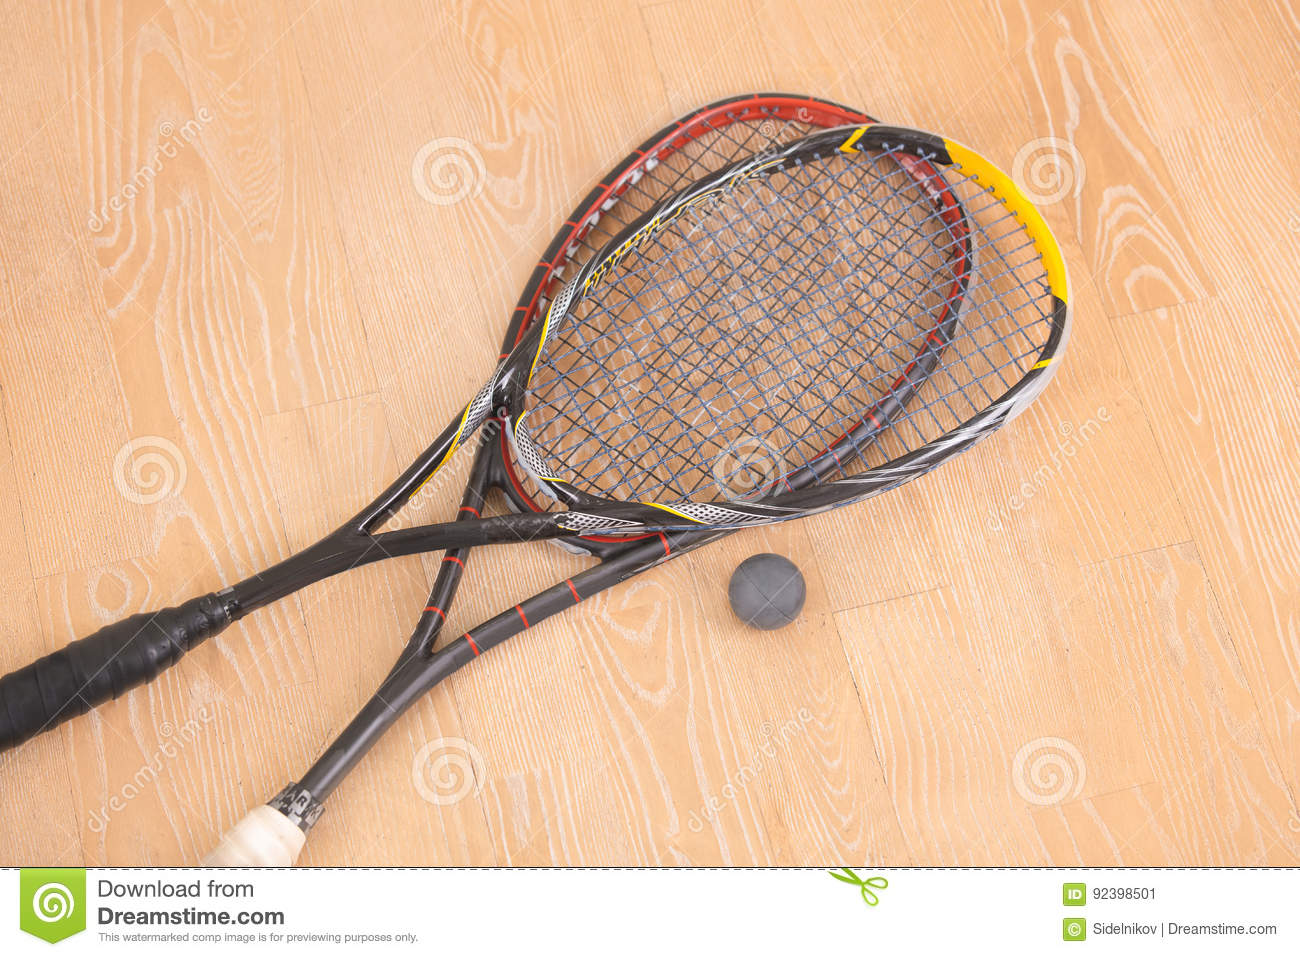 Sport equiment rackets and ball on floor